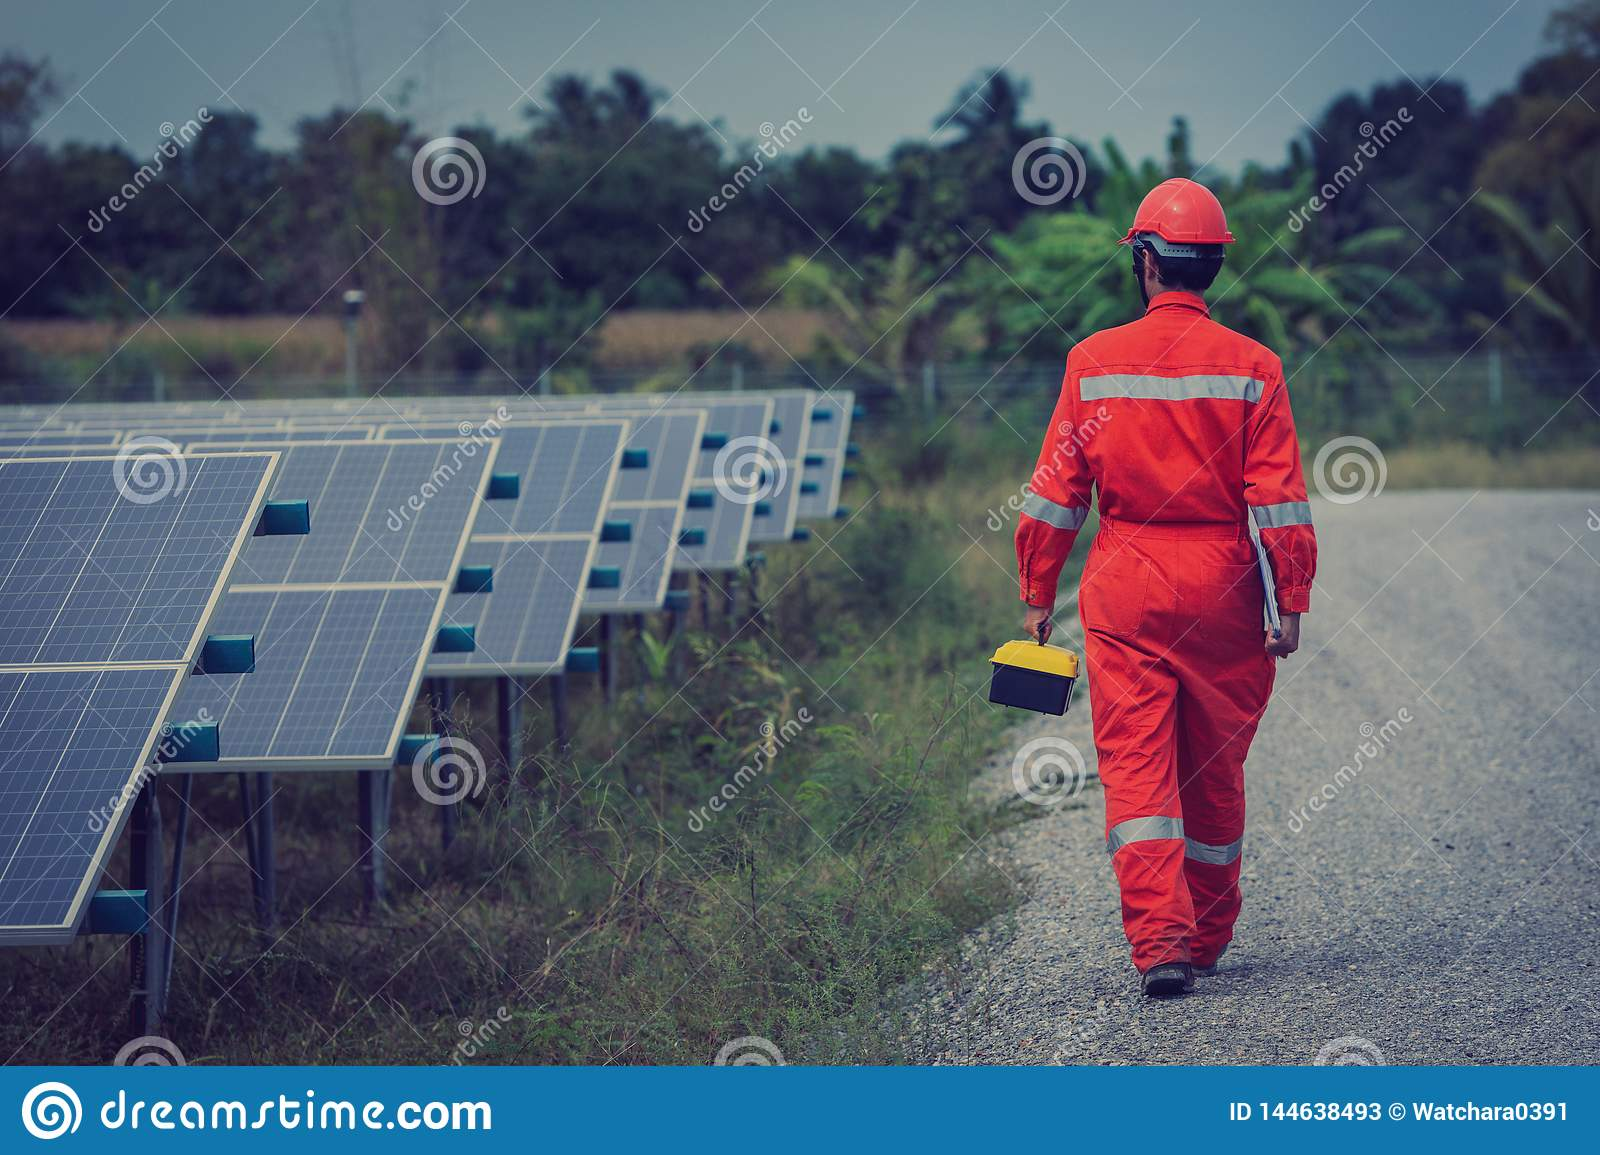 engineer working on installing solar panel ; operation of solar power plant by smart operator